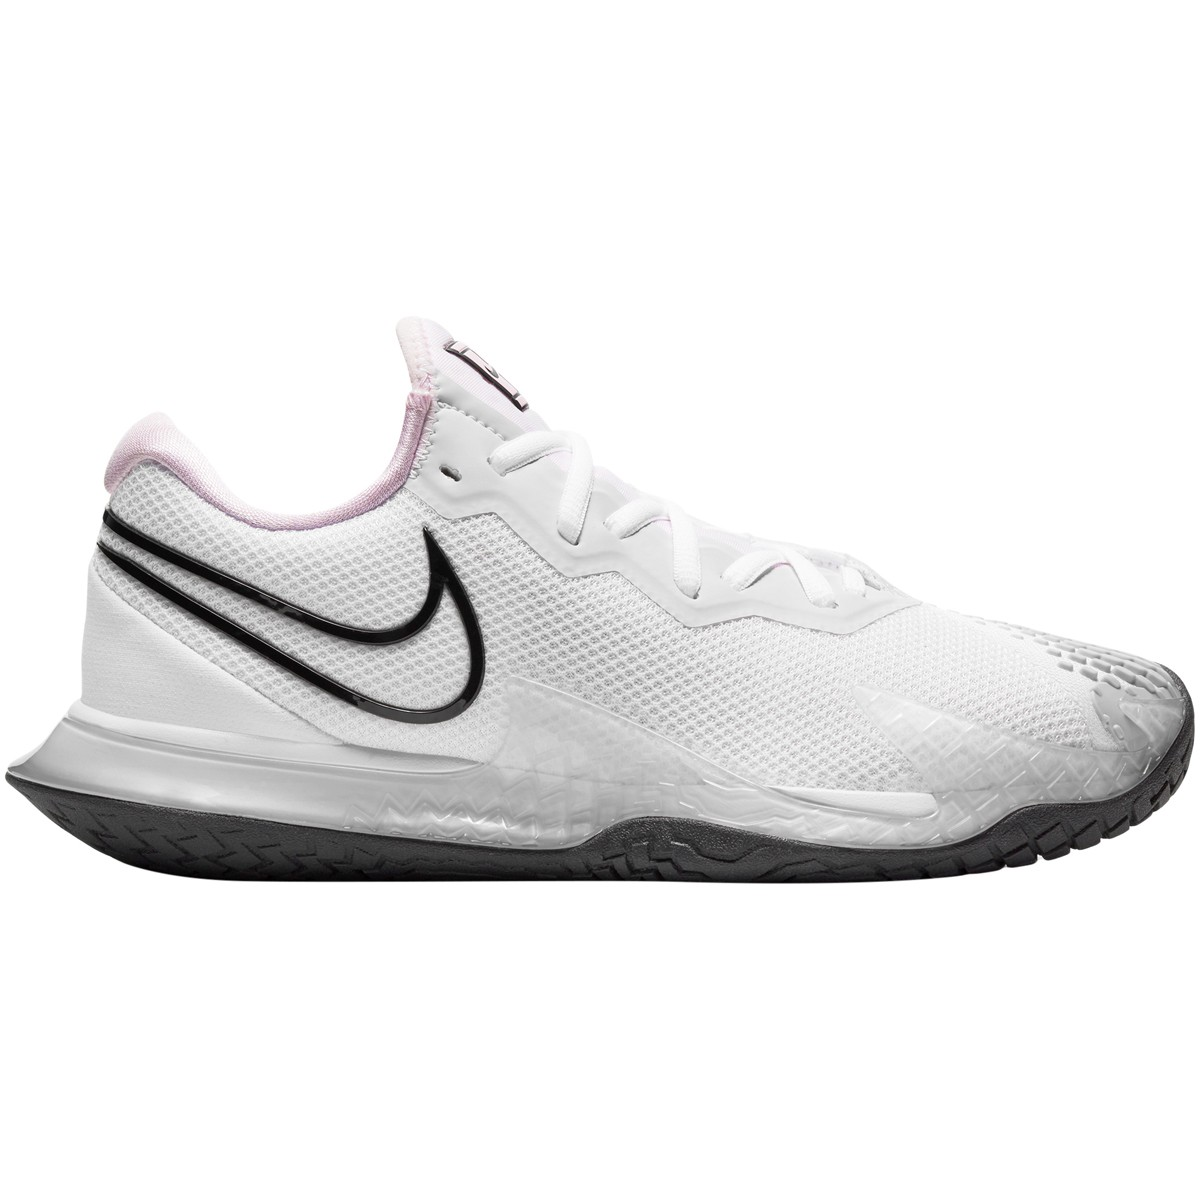 WOMEN'S NIKE AIR ZOOM VAPOR CAGE 4 ALL